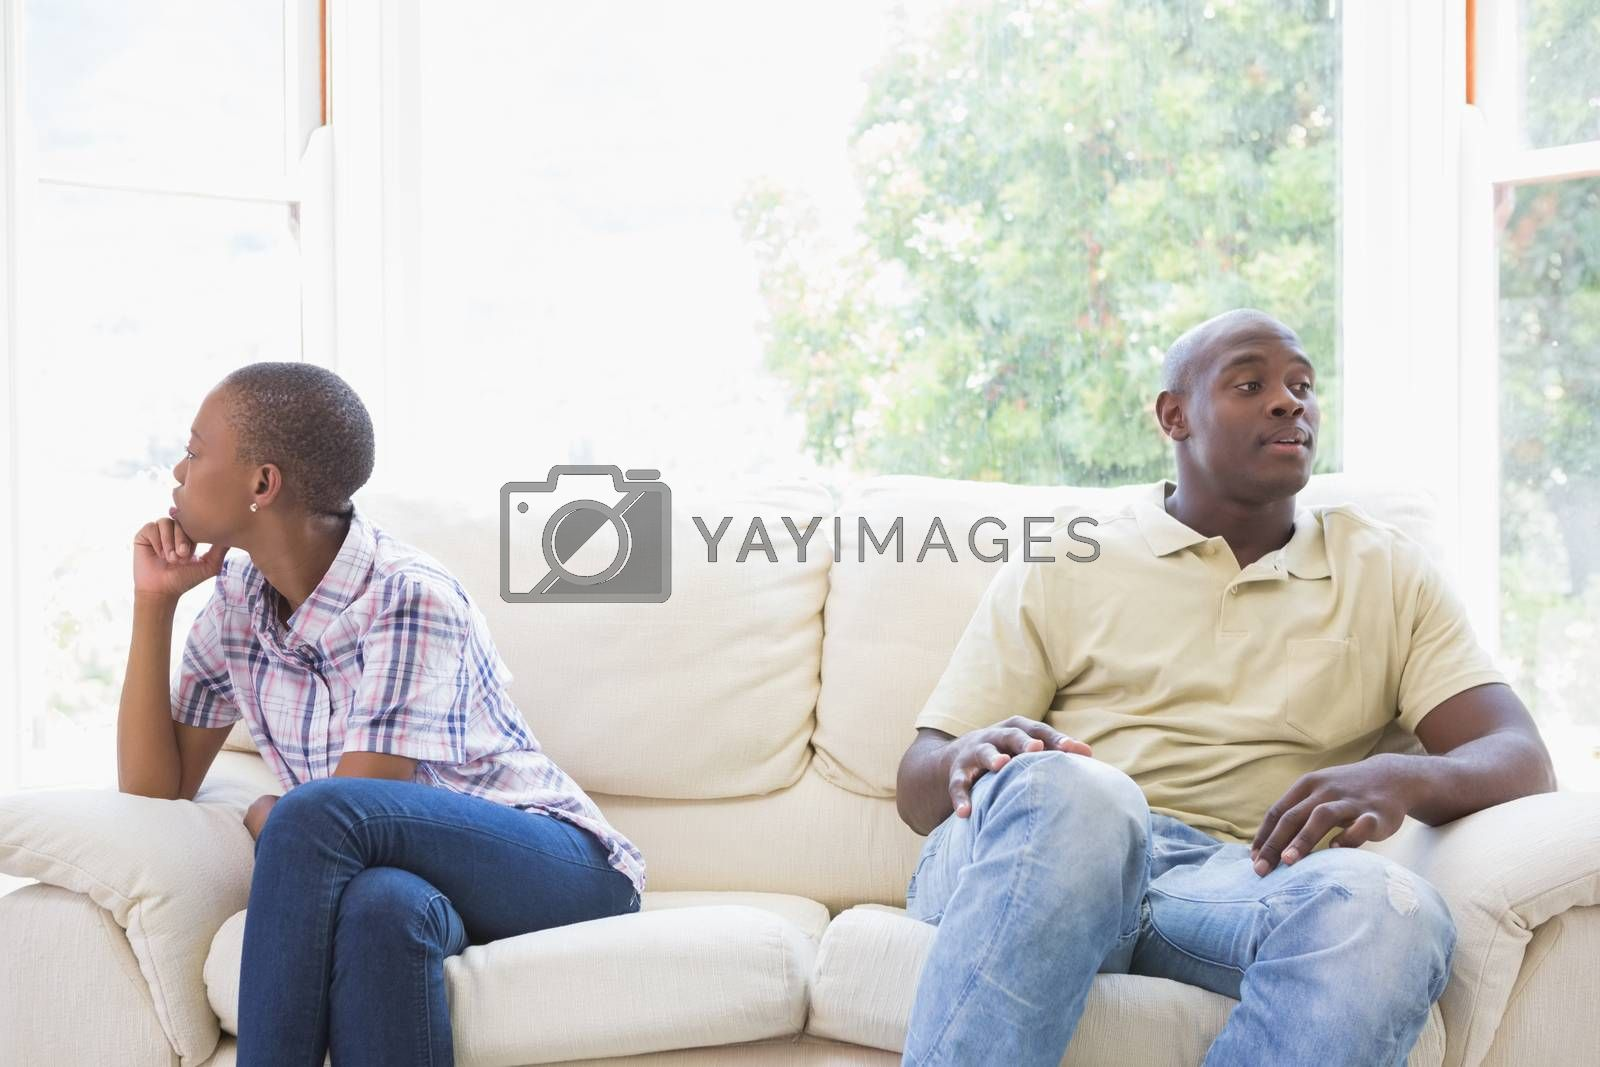 Royalty free image of A dispute between a couple sitting on the couch by Wavebreakmedia